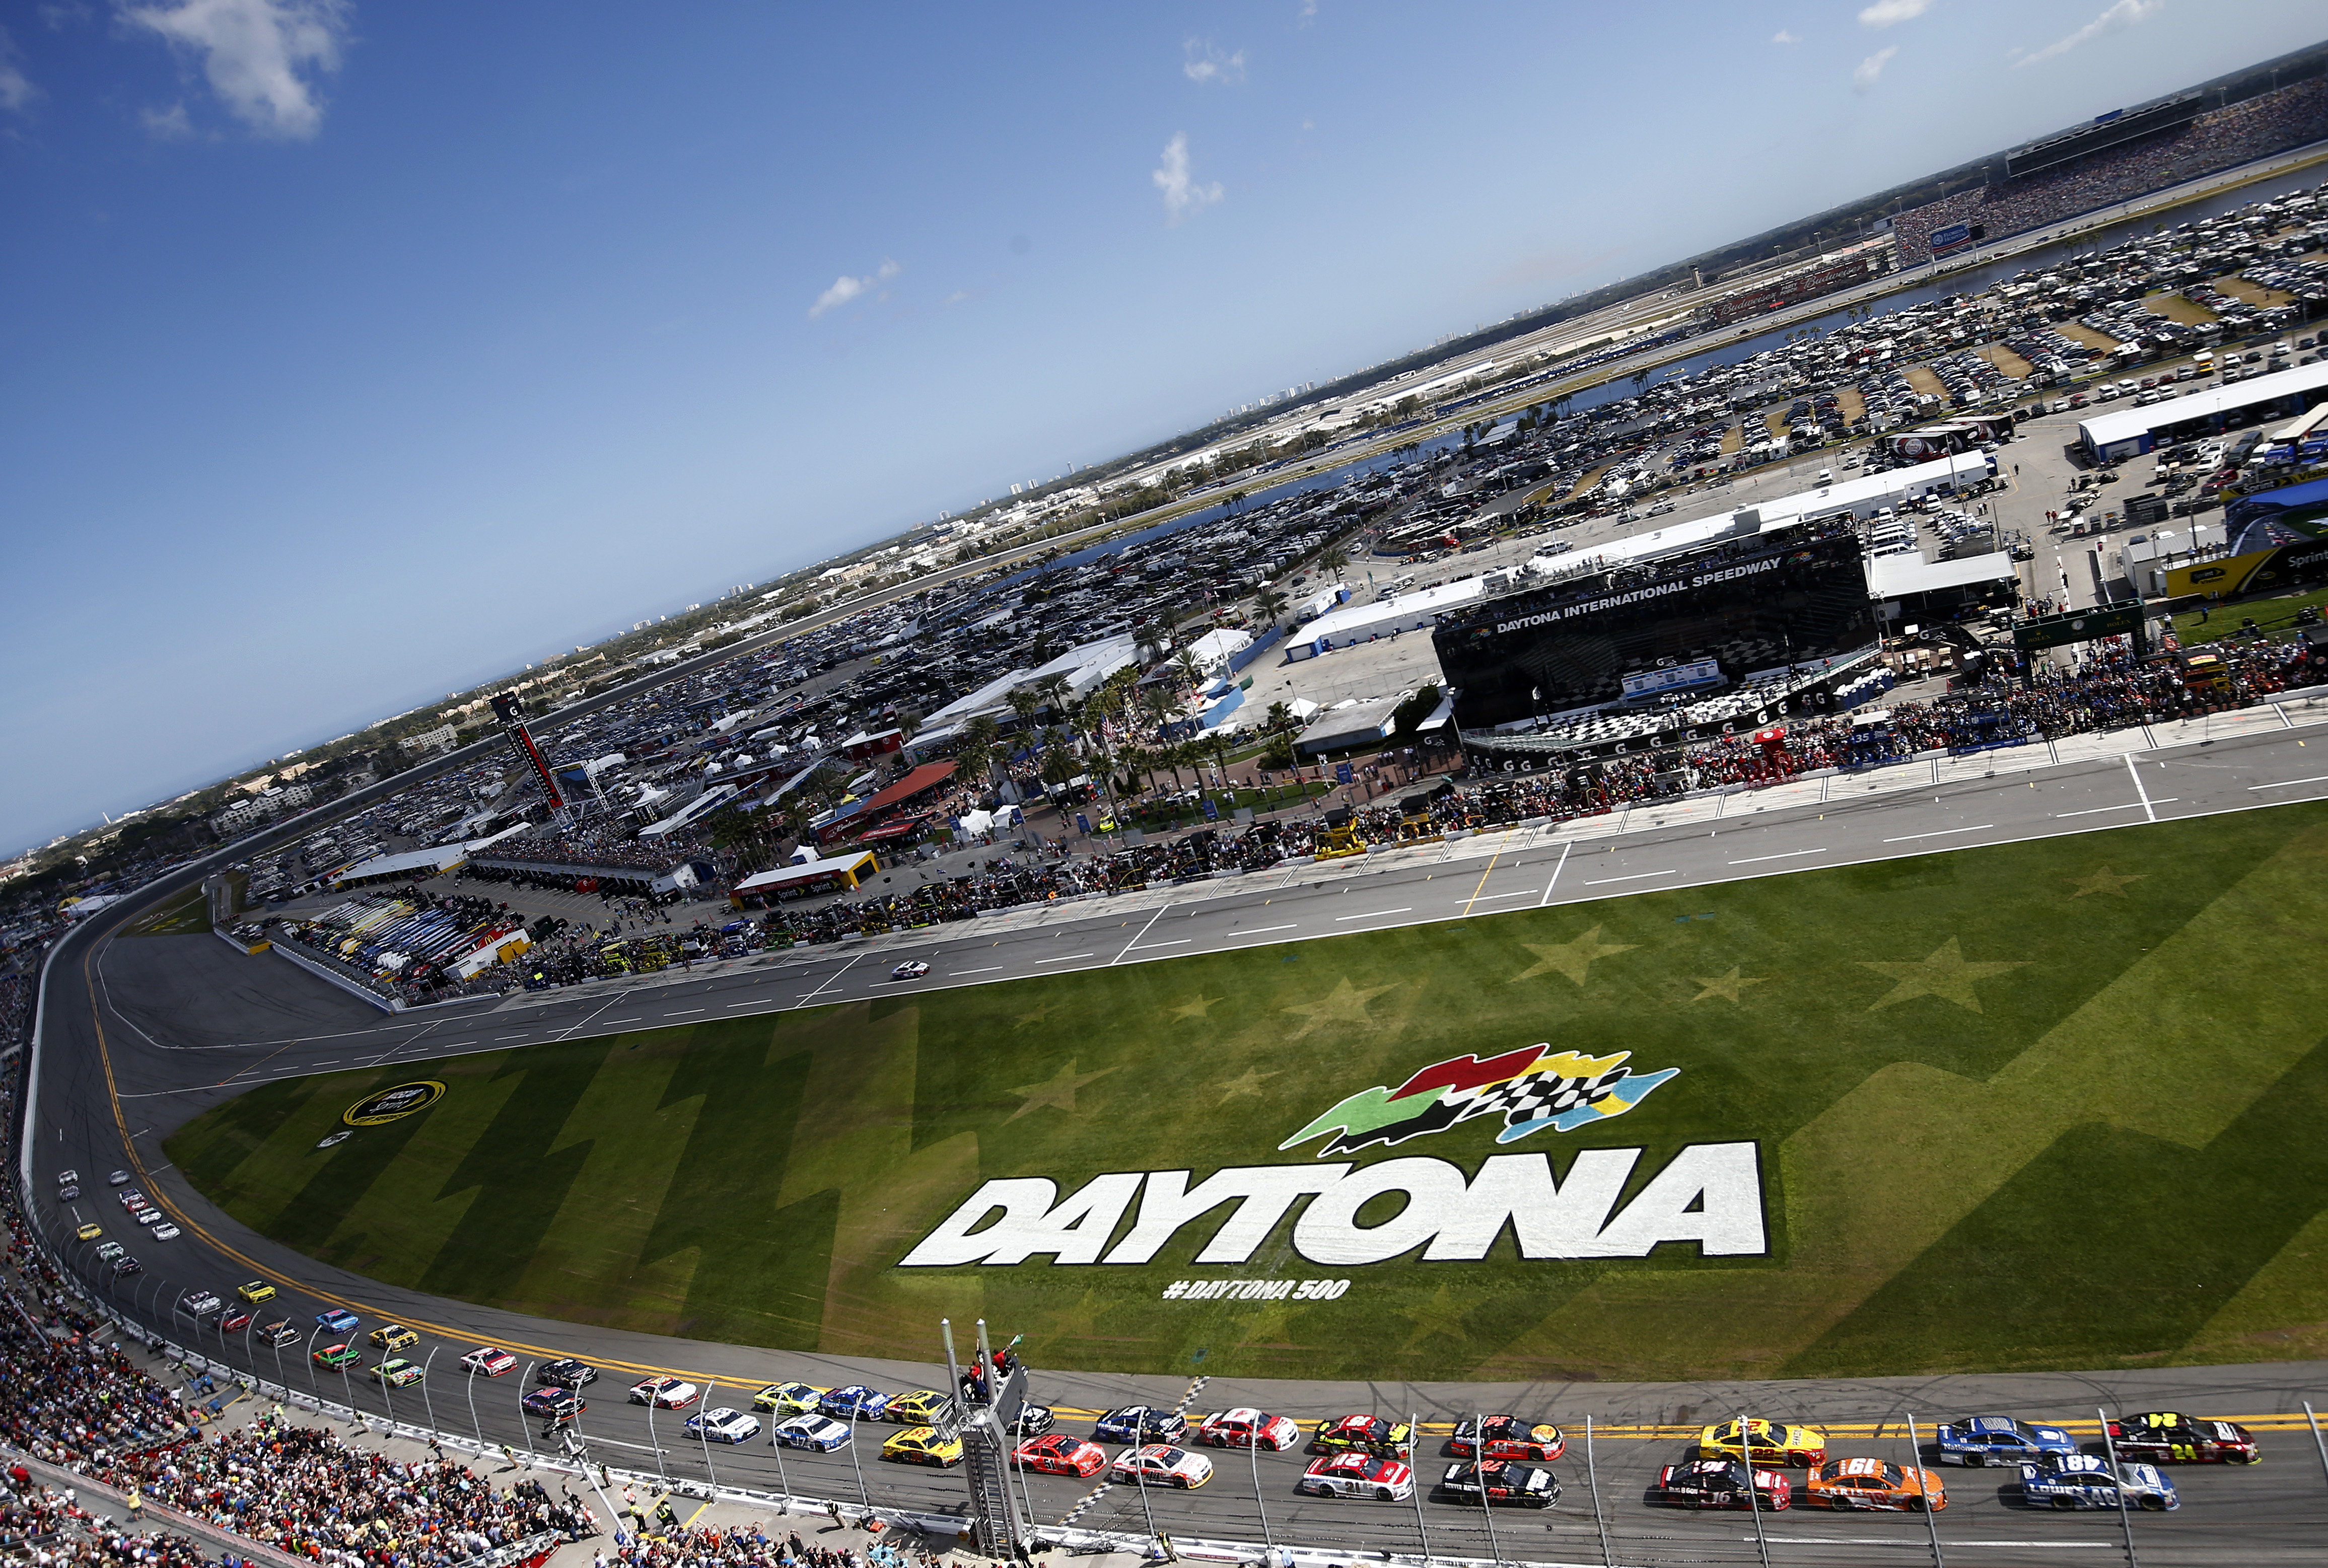 when is the daytona 500 race this year